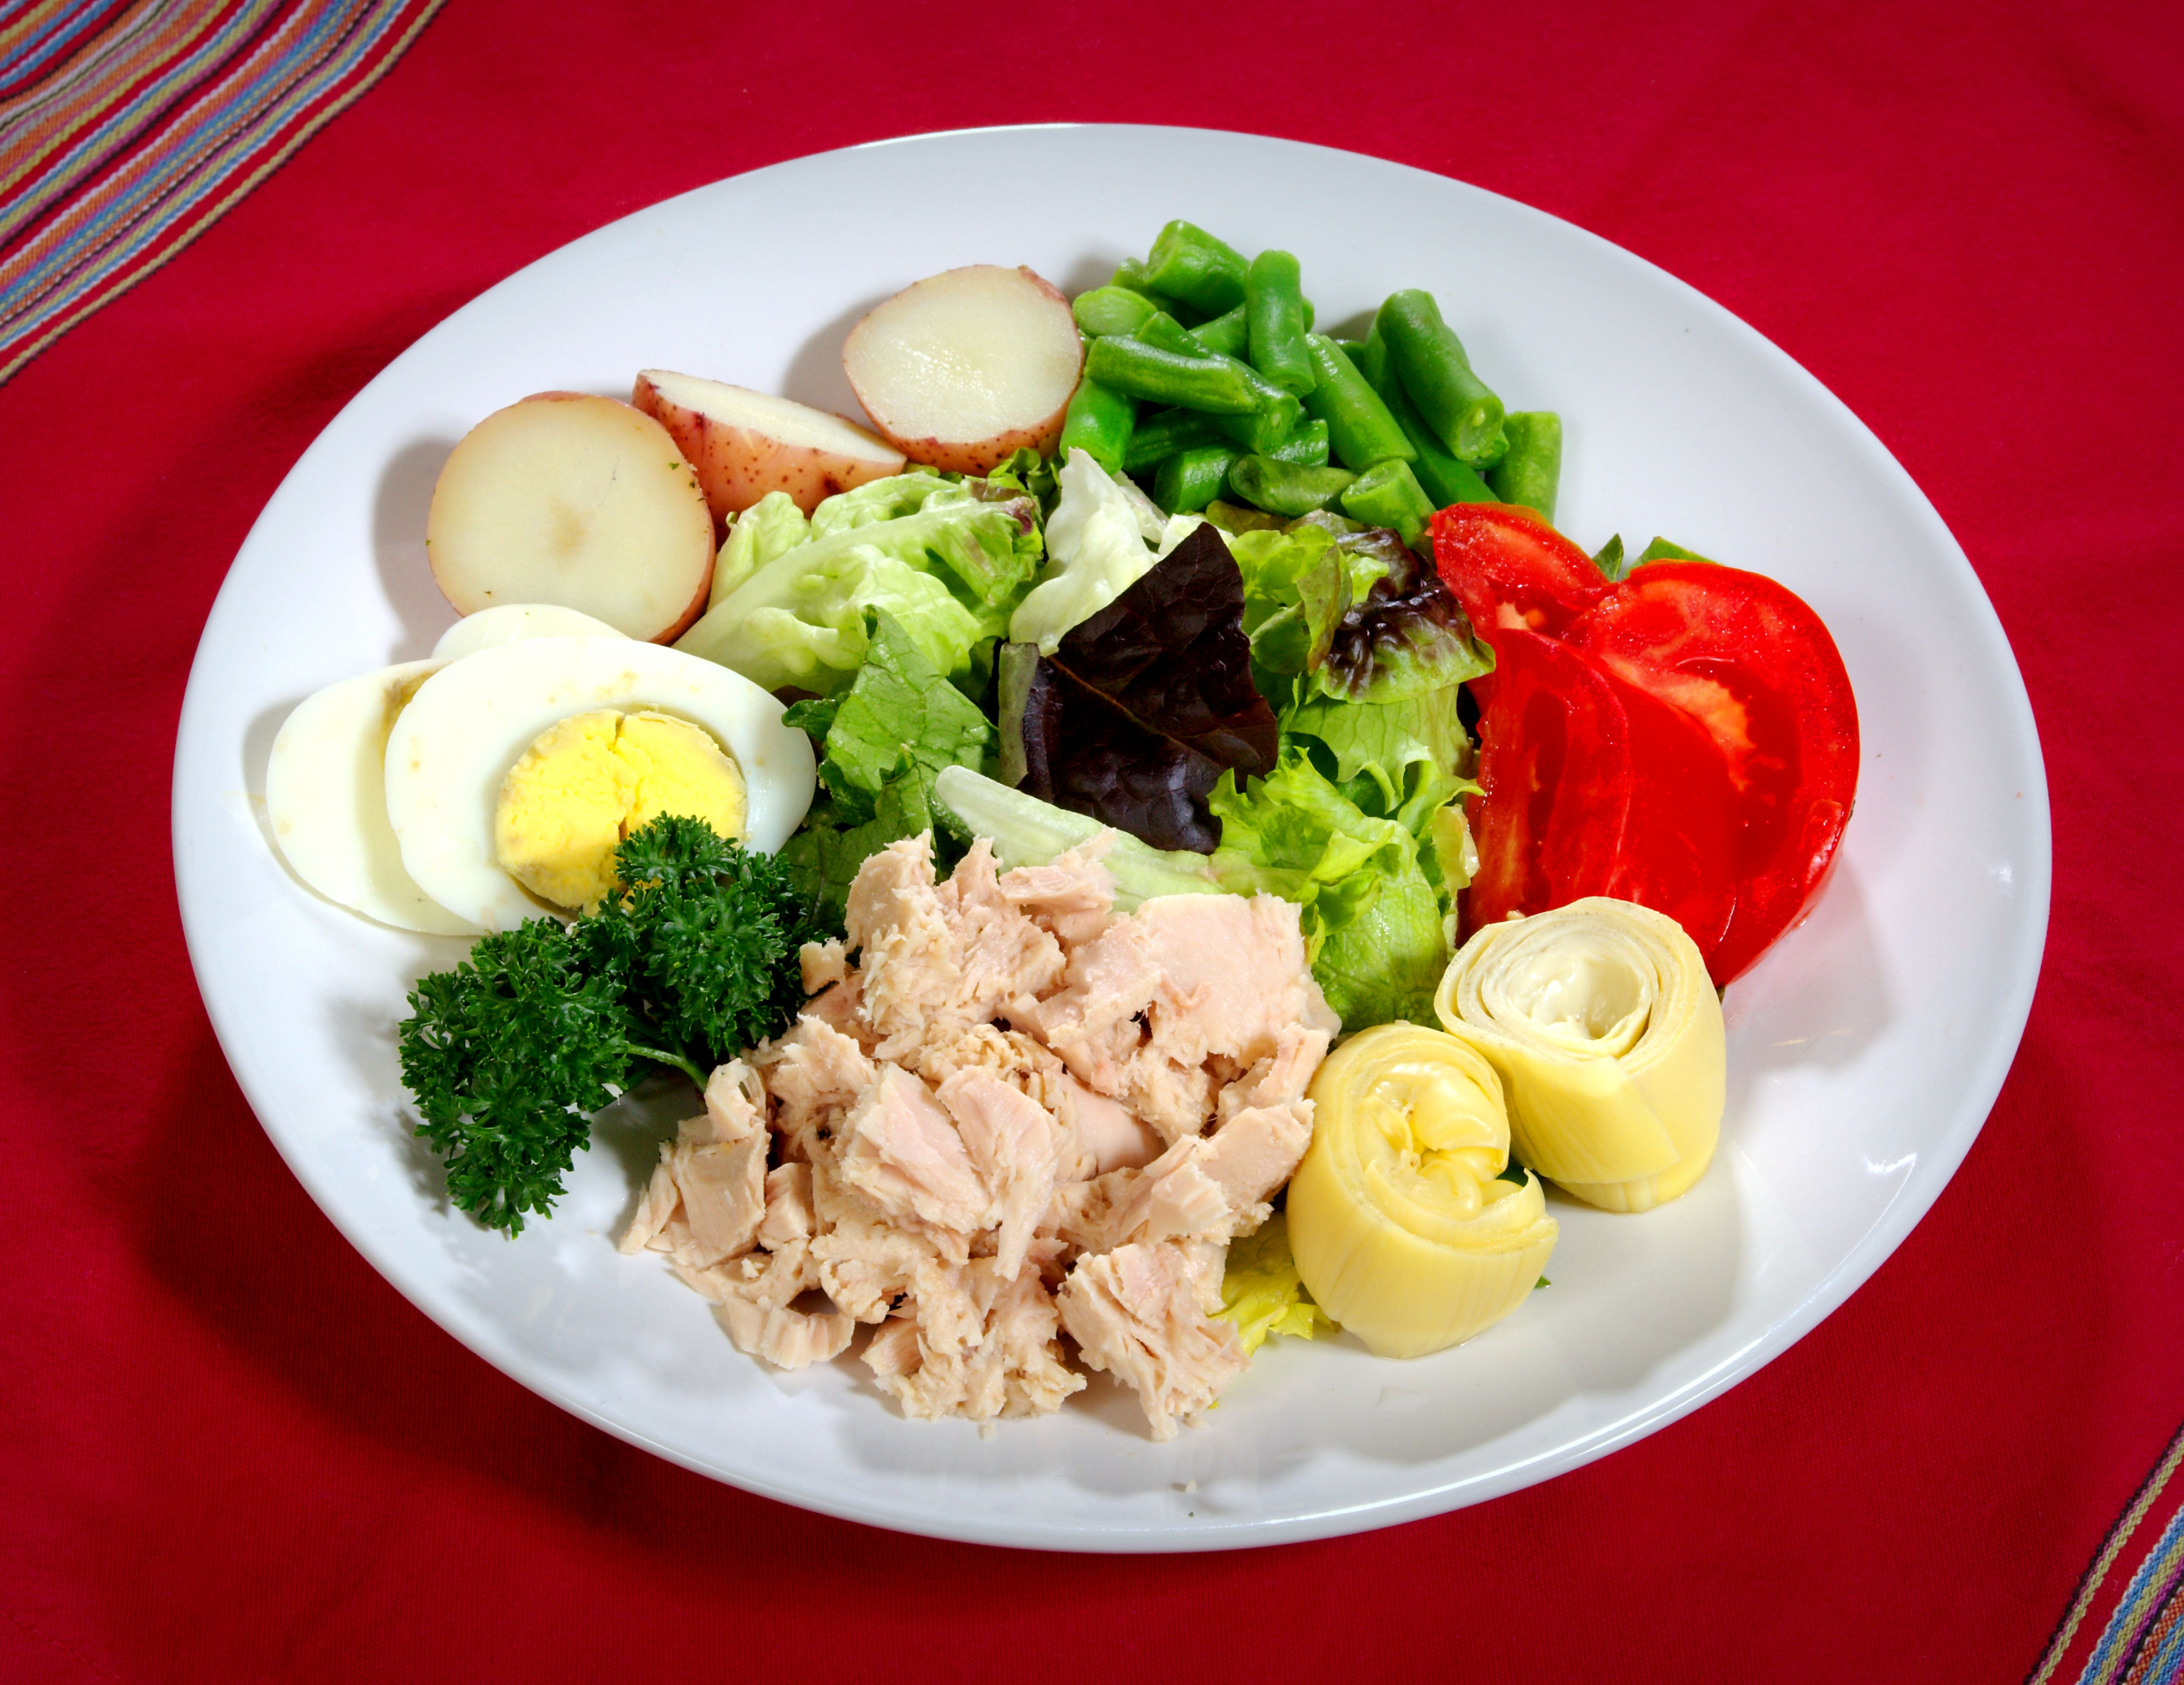 Free Picture Plate Grouping Healthy Food Bright Red